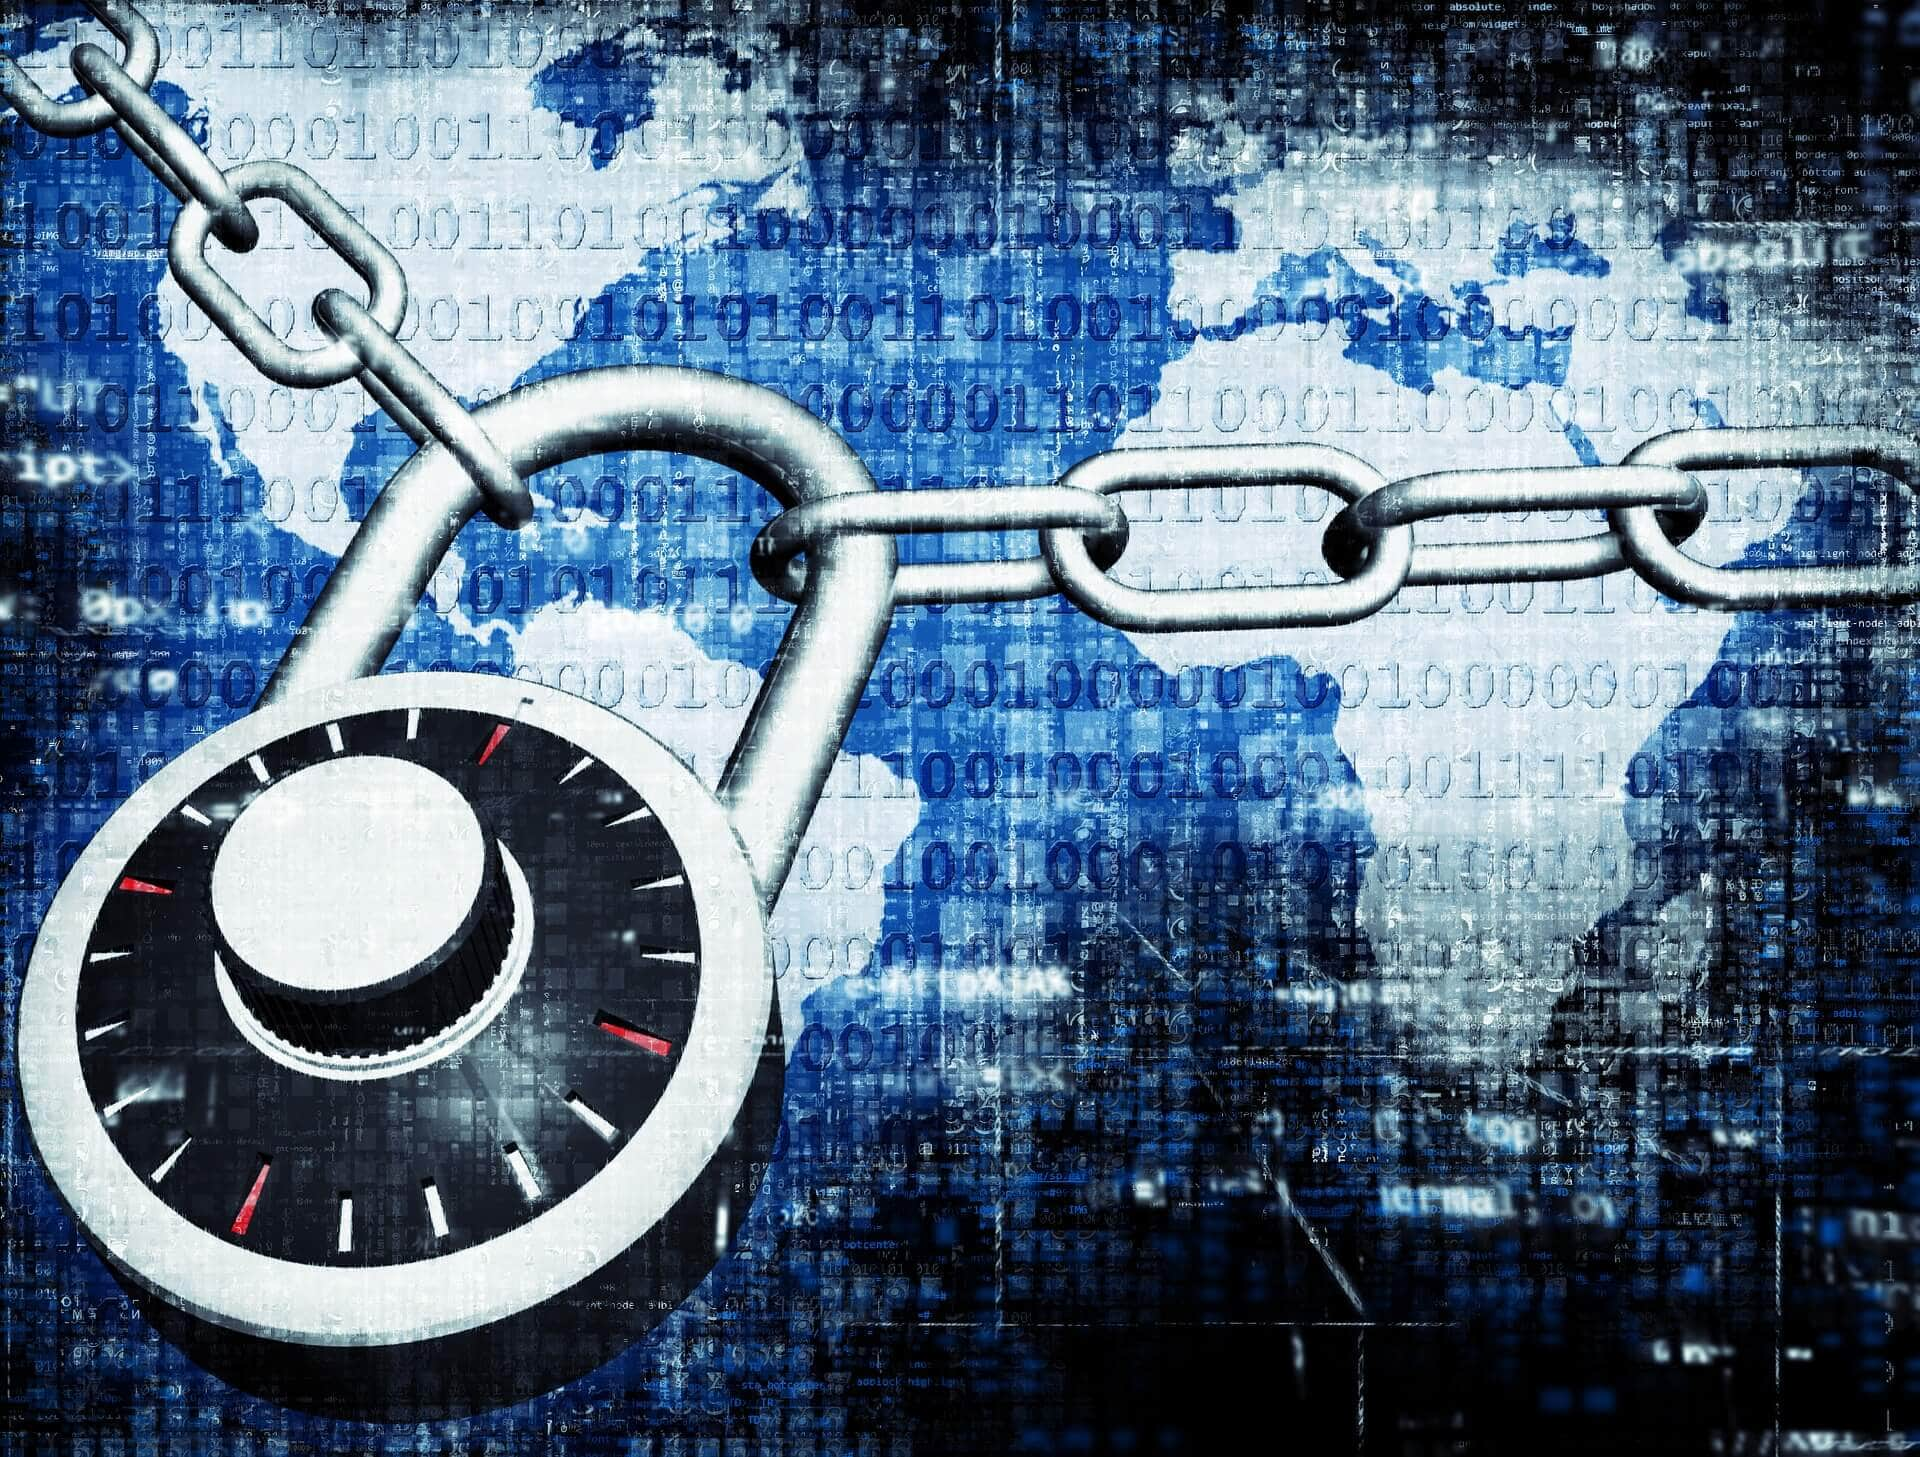 content/en-au/images/repository/isc/2020/how-to-protect-your-internet-privacy.jpg